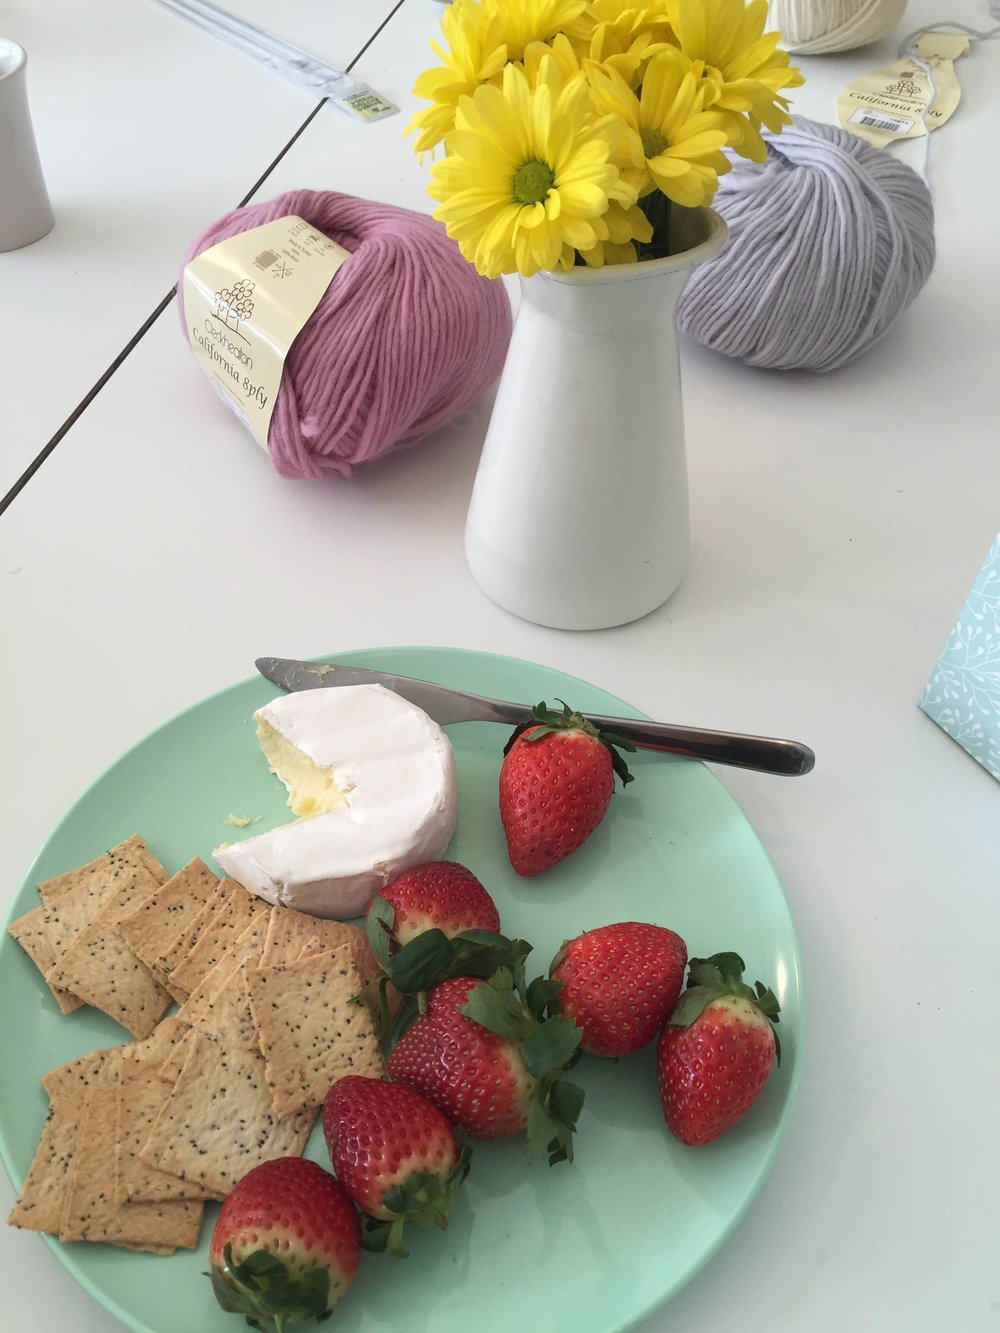 Because what is knitting without cheese and strawberries?